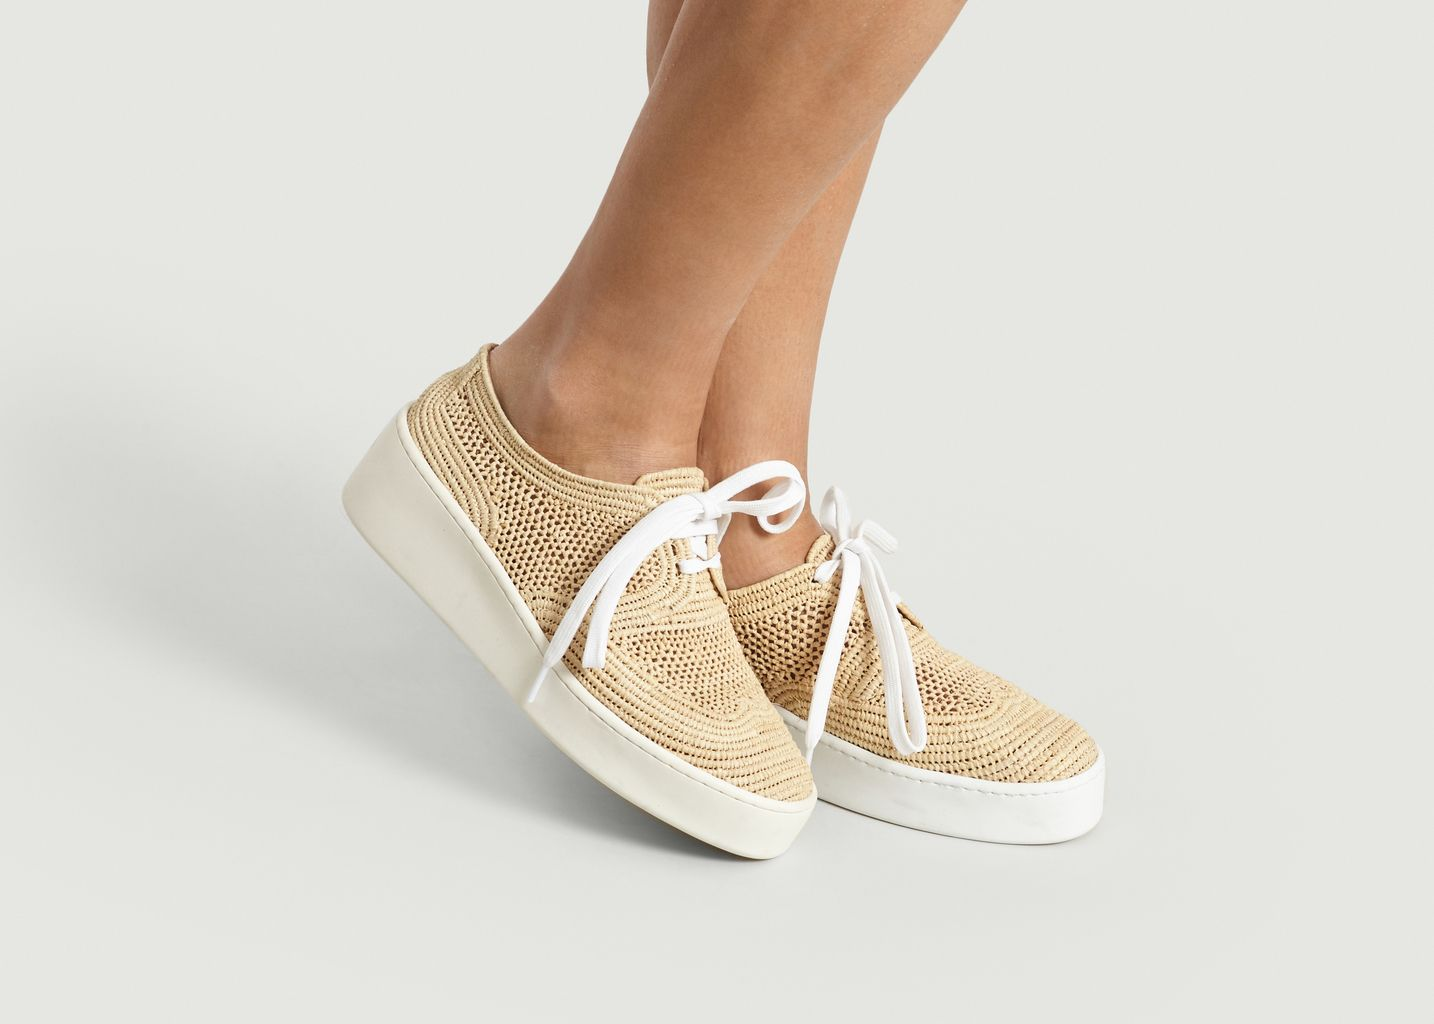 Chaussures Oxford Taille - Clergerie